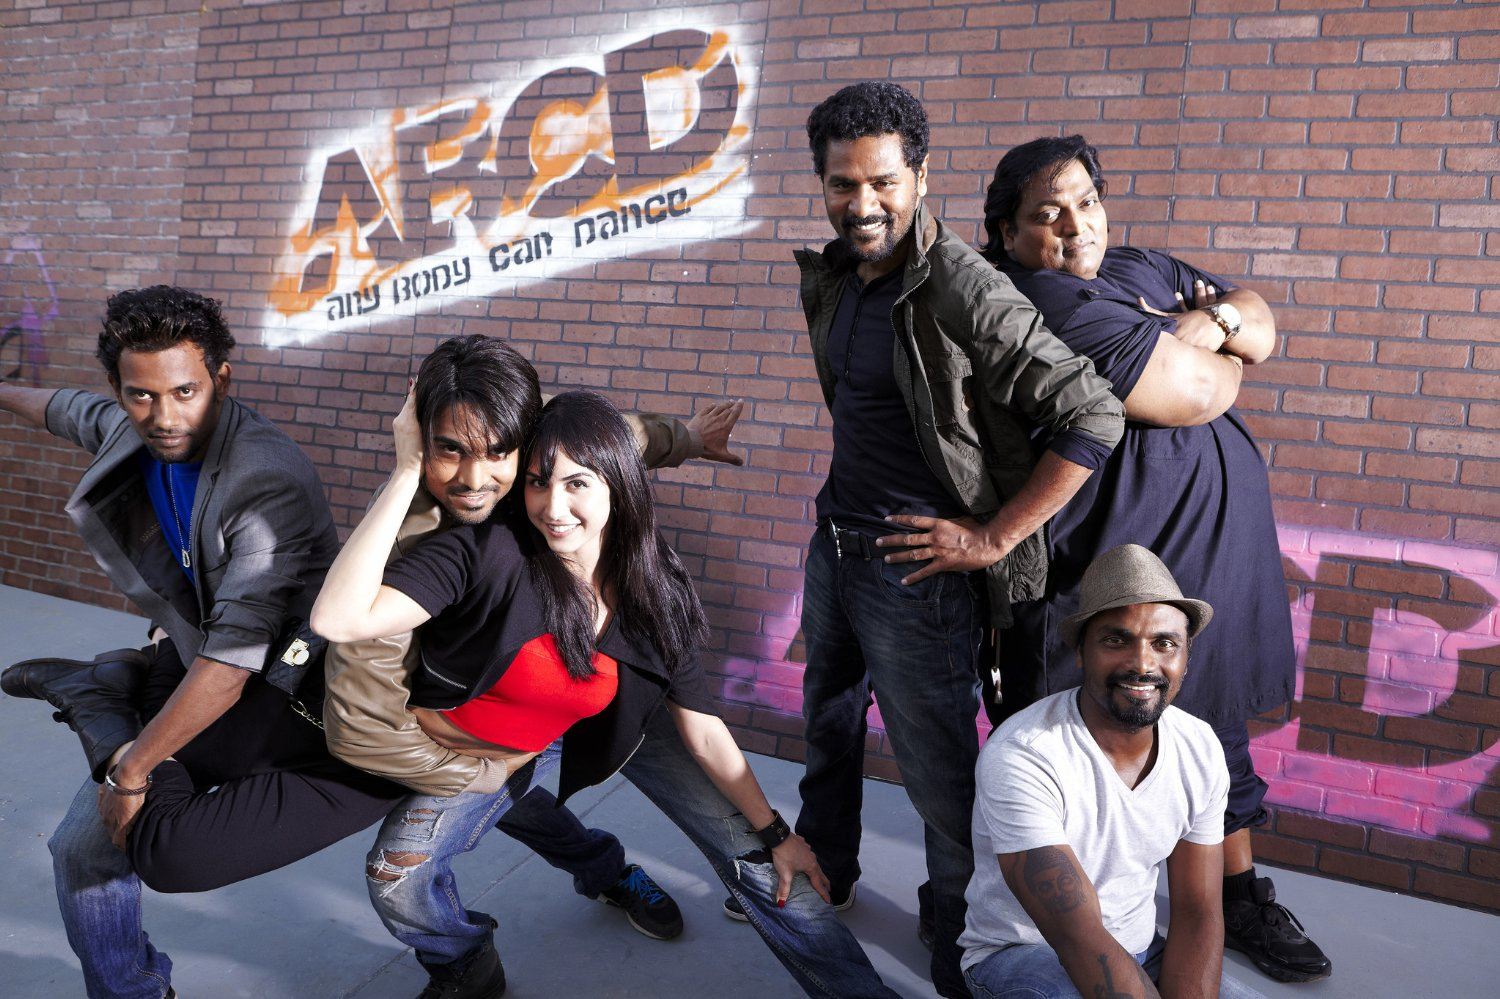 Abcd (any Body Can Dance)